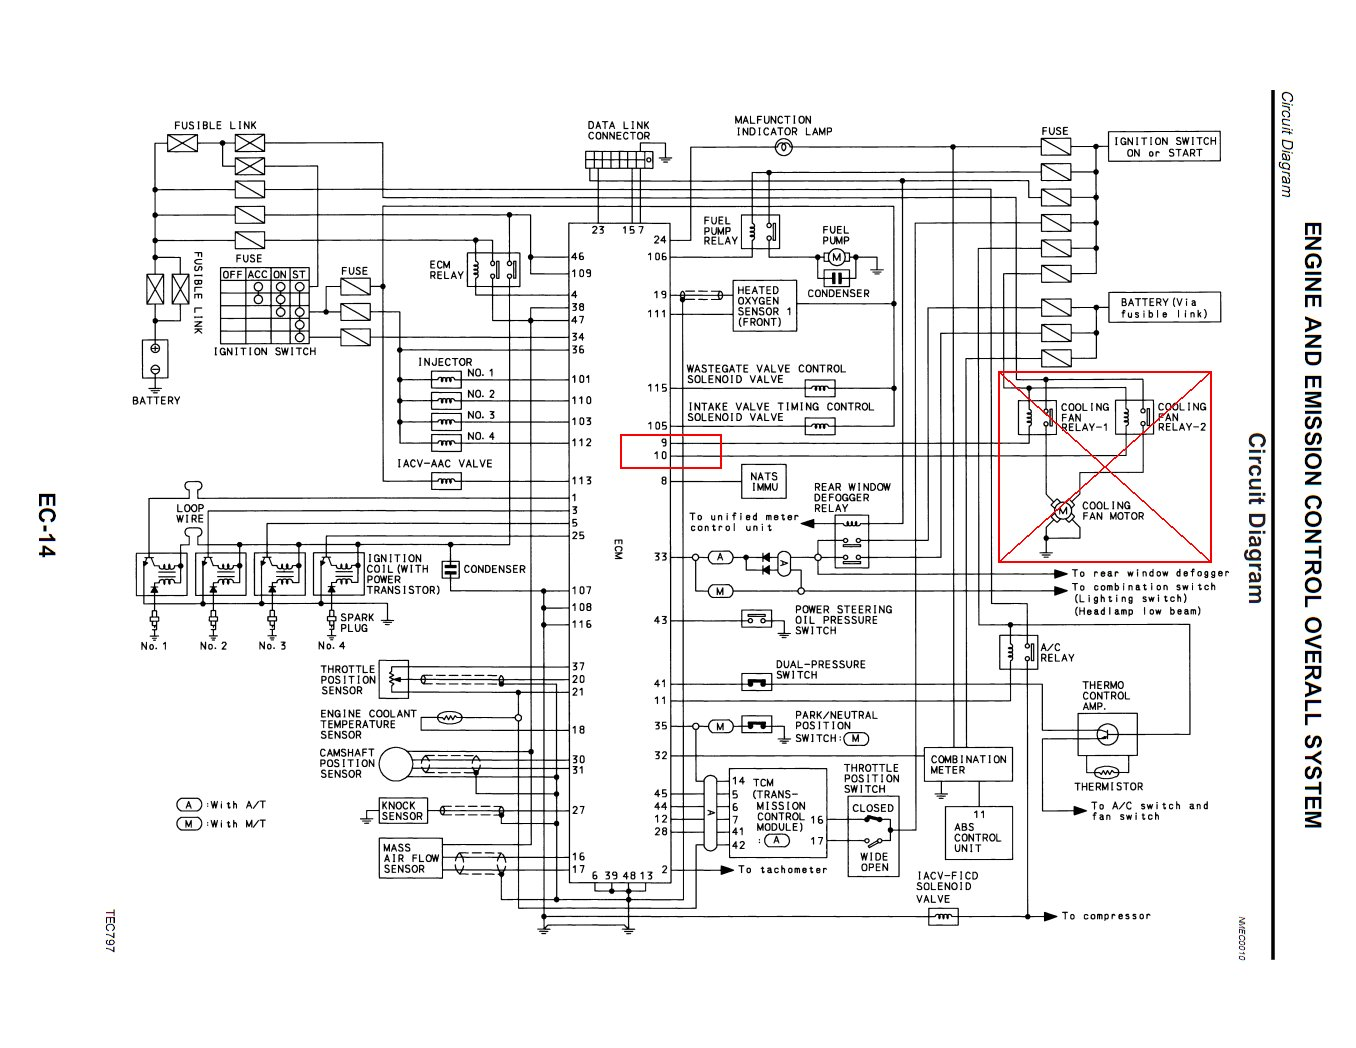 Wiring Diagram Renault Clio Electric Window. Renault. Auto